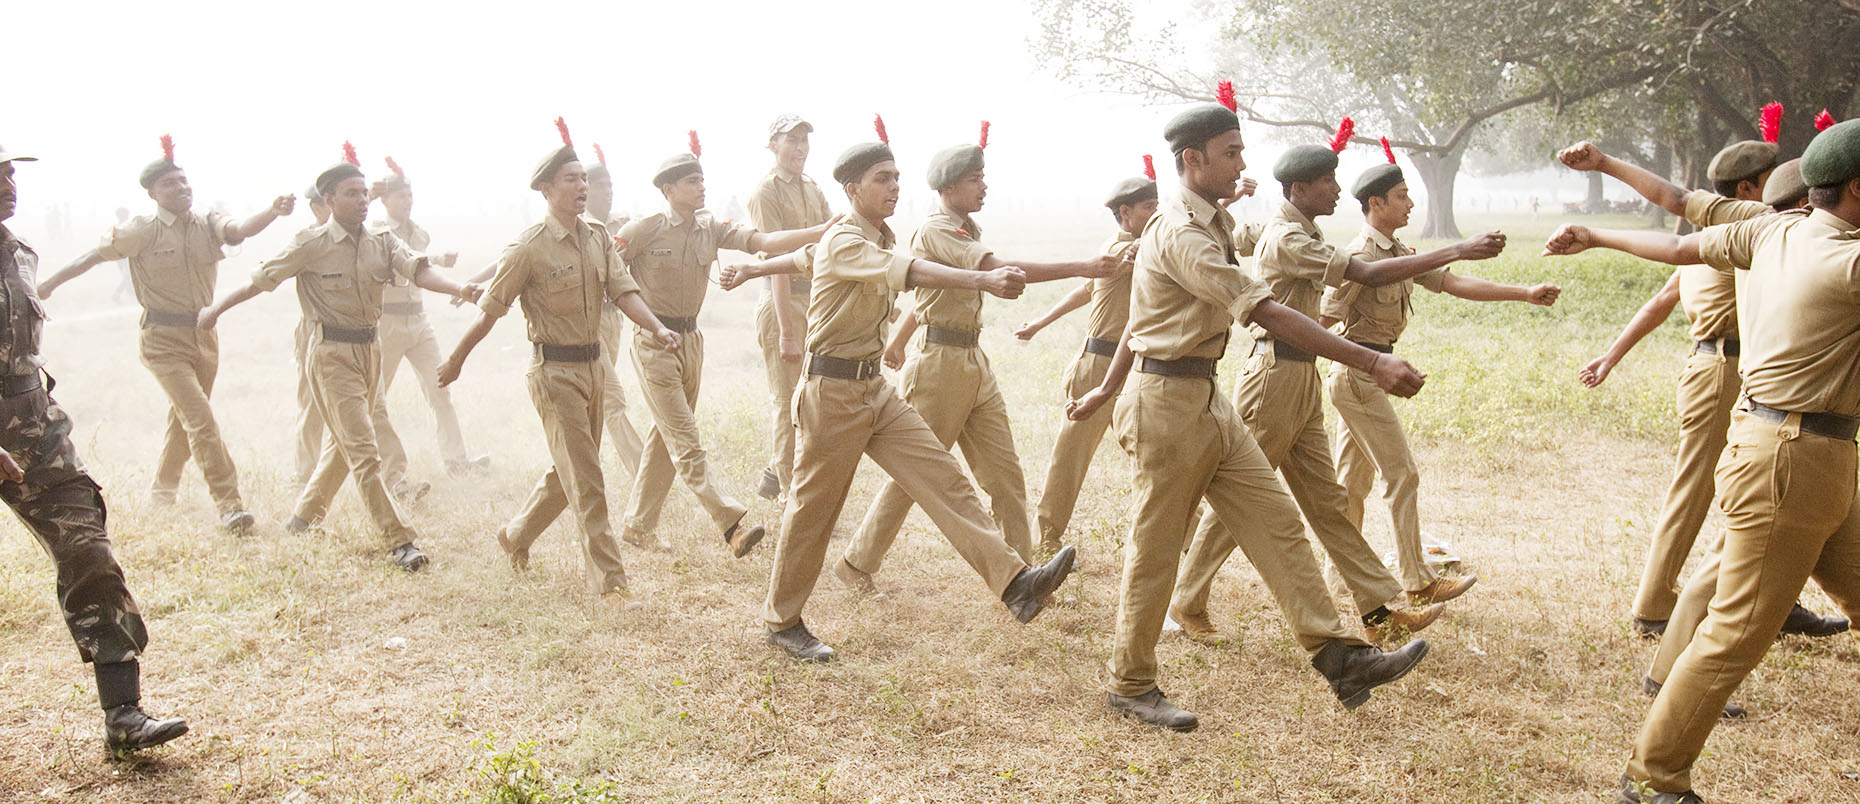 India_Marching_MG_1165